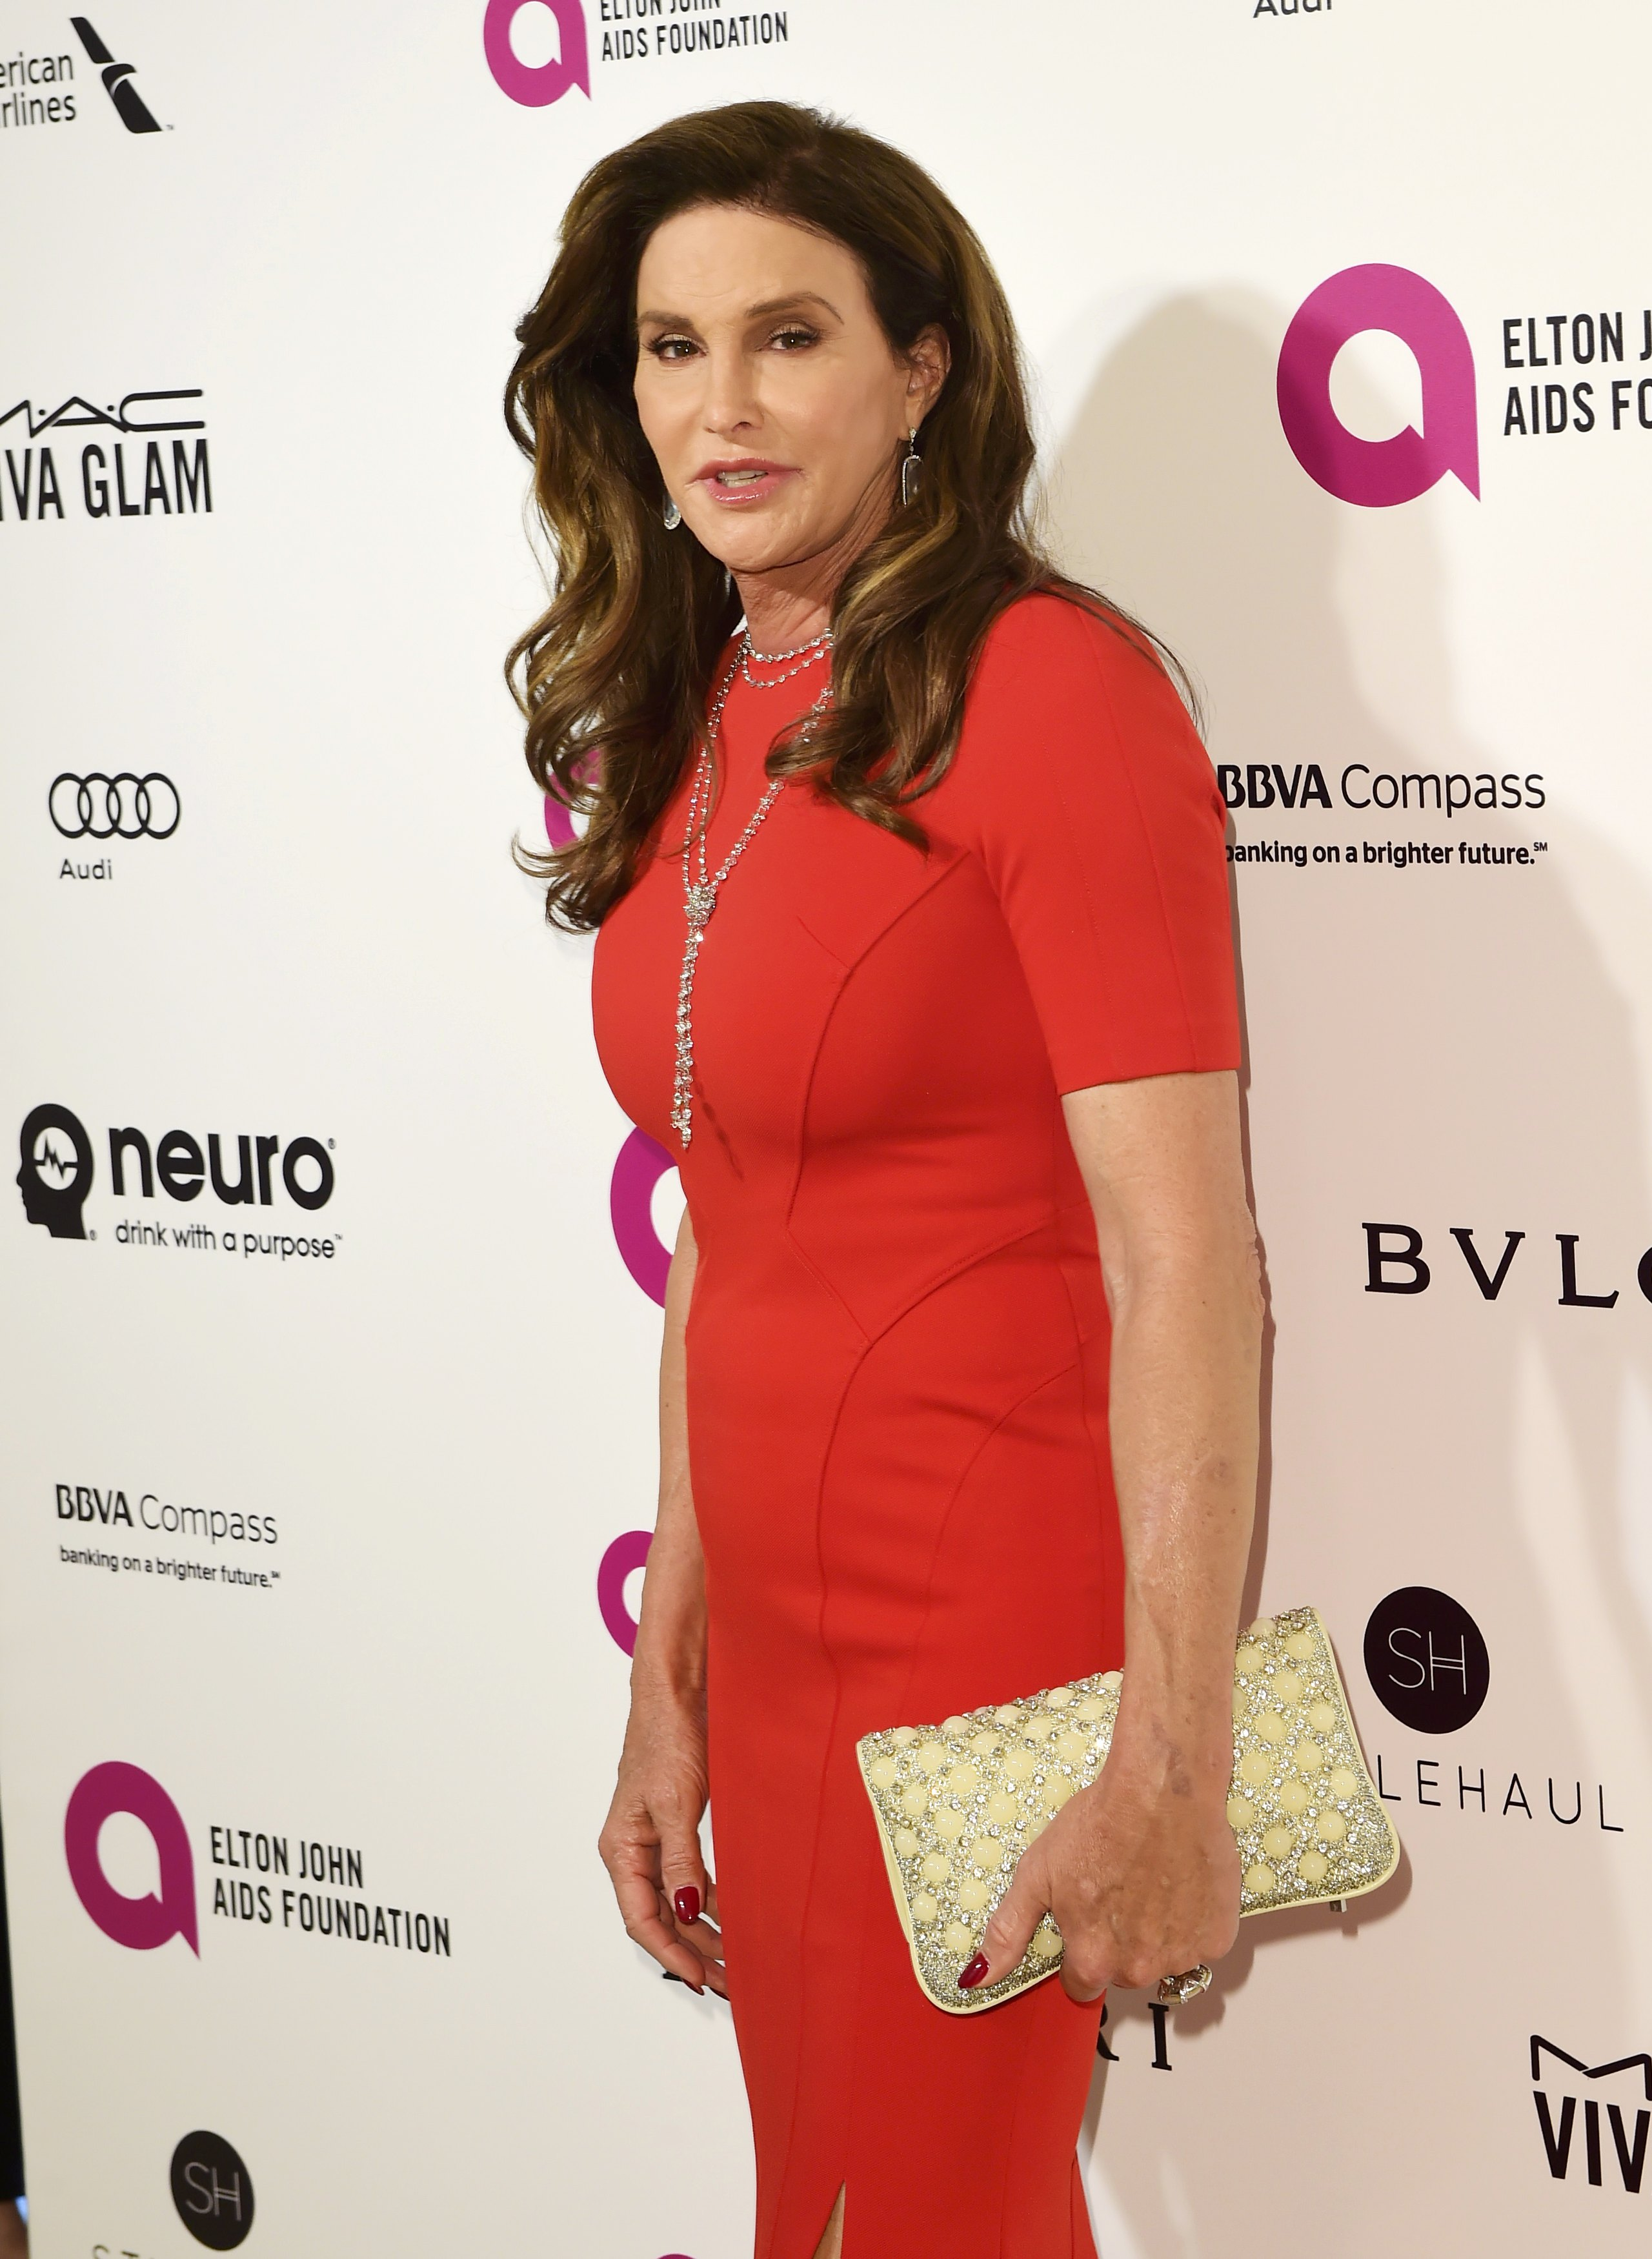 Caitlyn Jenner Will Reportedly Pose Nude For Sports